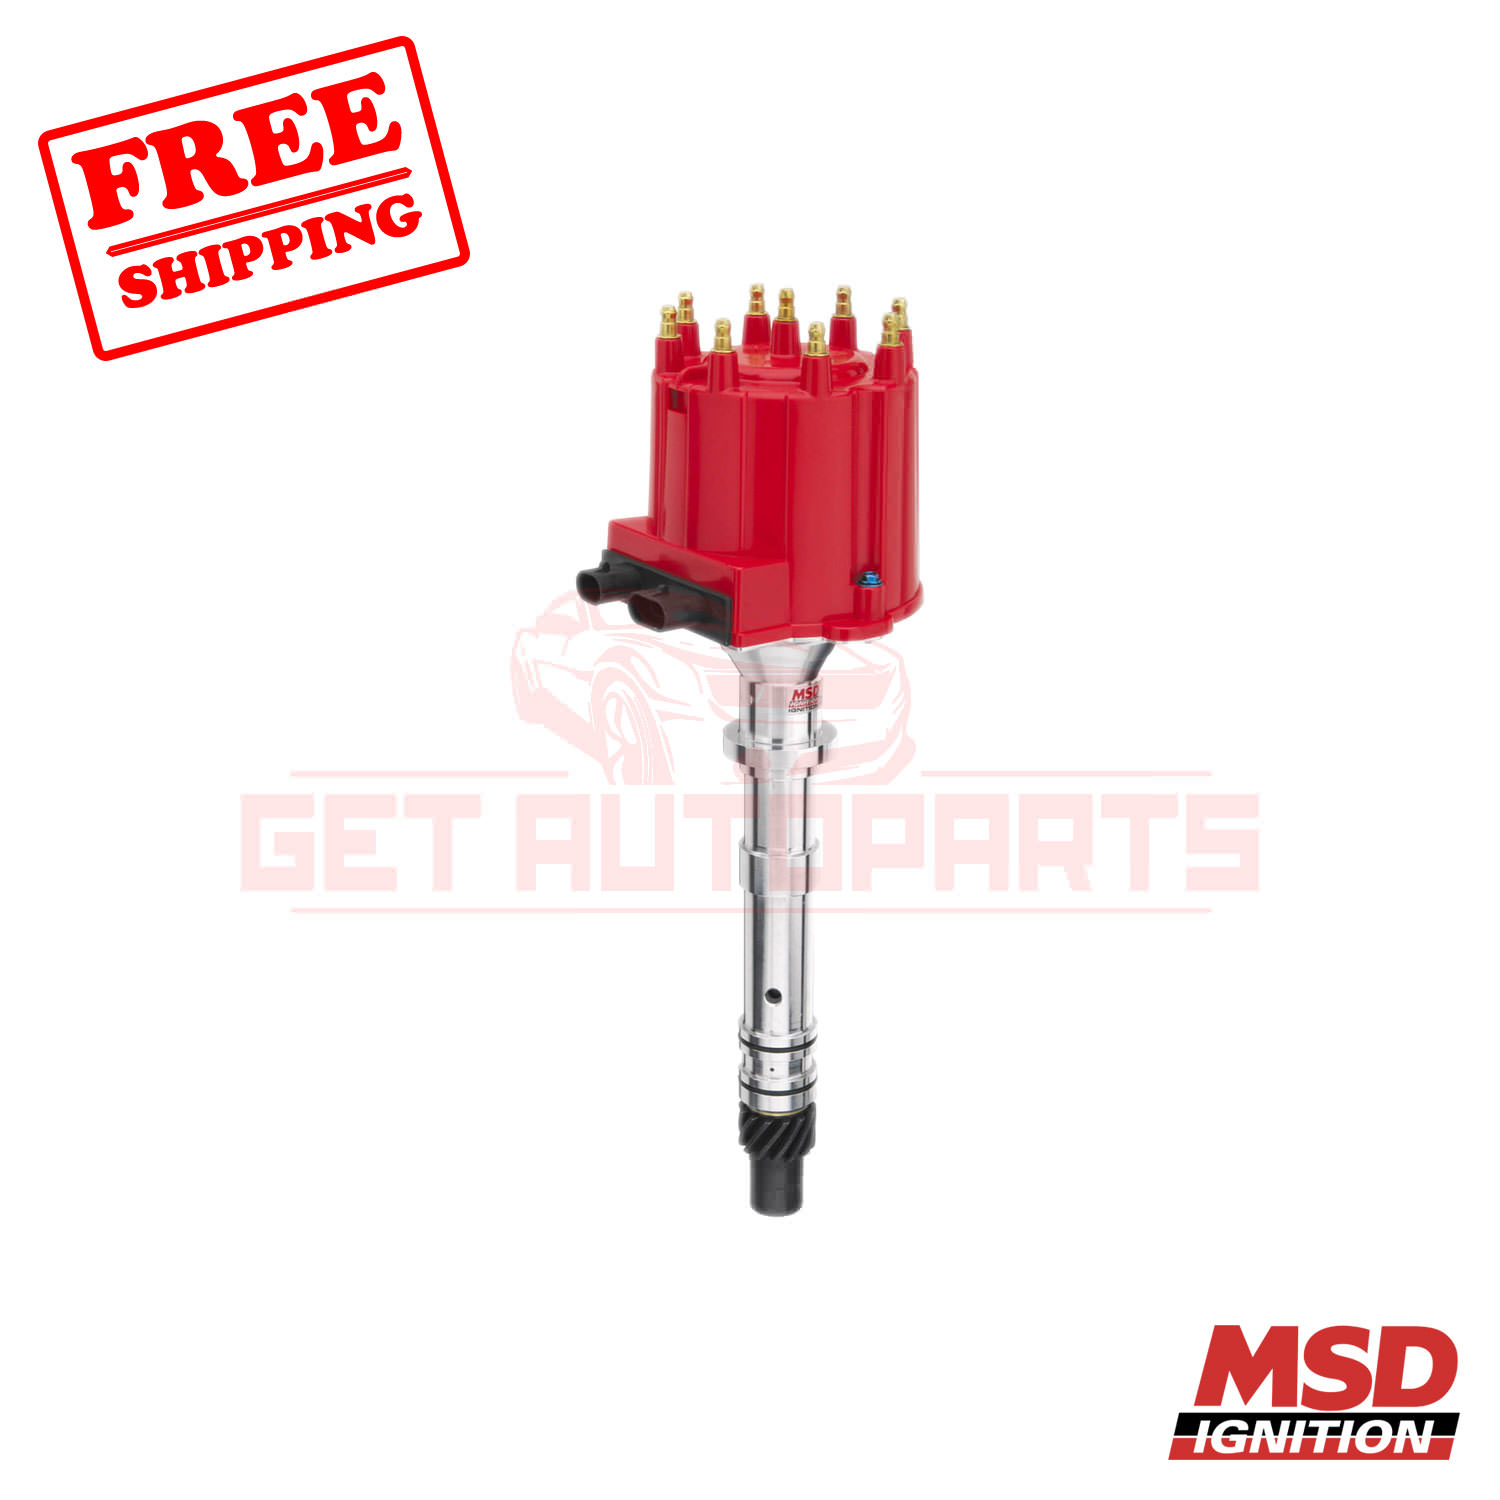 Replaces 1103481 1103482 1103483 1103484 1103488 New Distributor For 1978-1989 Chevrolet Chevy G10 G20 G30 K10 K20 K30 K5 Blazer P10 P20 P30